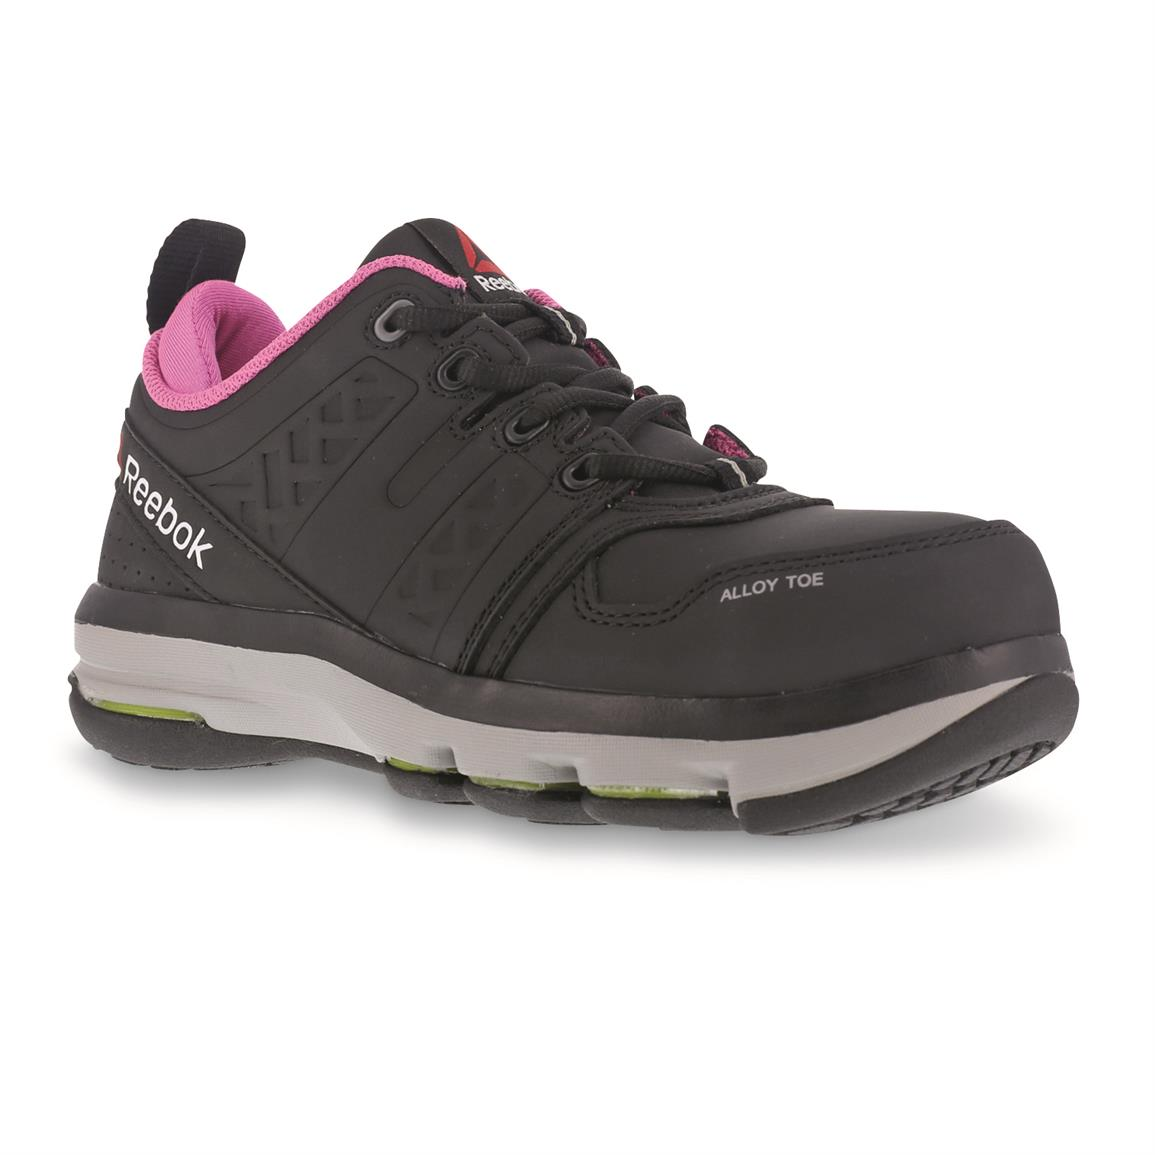 Reebok Women's DMX Flex Work Composite Toe Work Shoes, Black/Pink